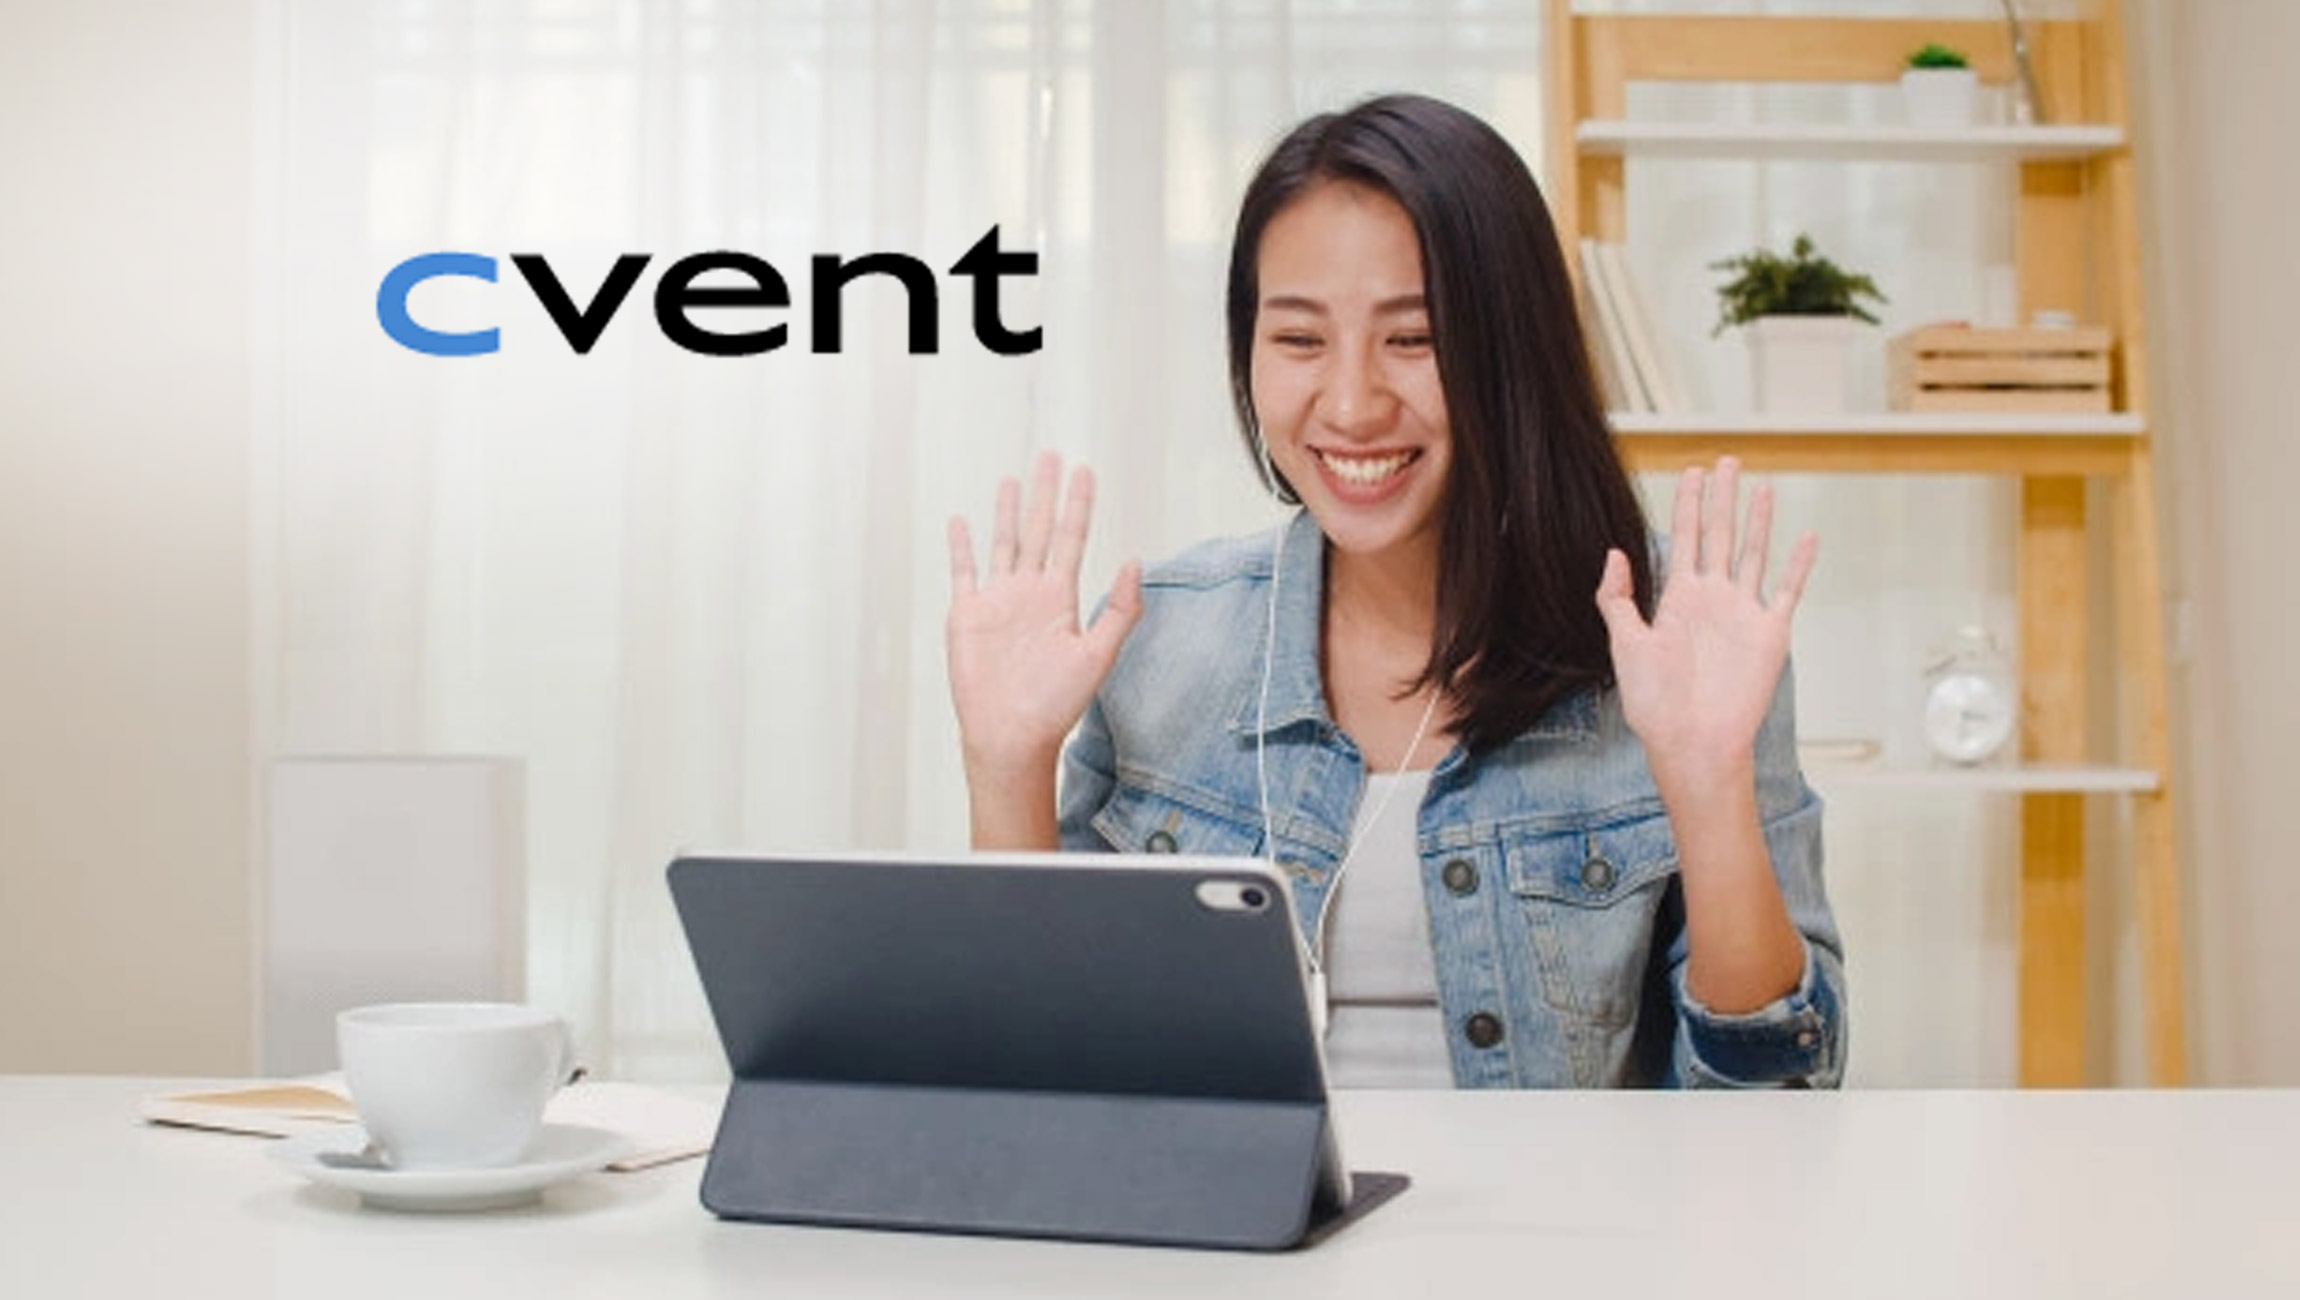 Global Leaders Cvent and Encore Announce Strategic Partnership to Offer Unique End-to-End Virtual and Hybrid Events Solution